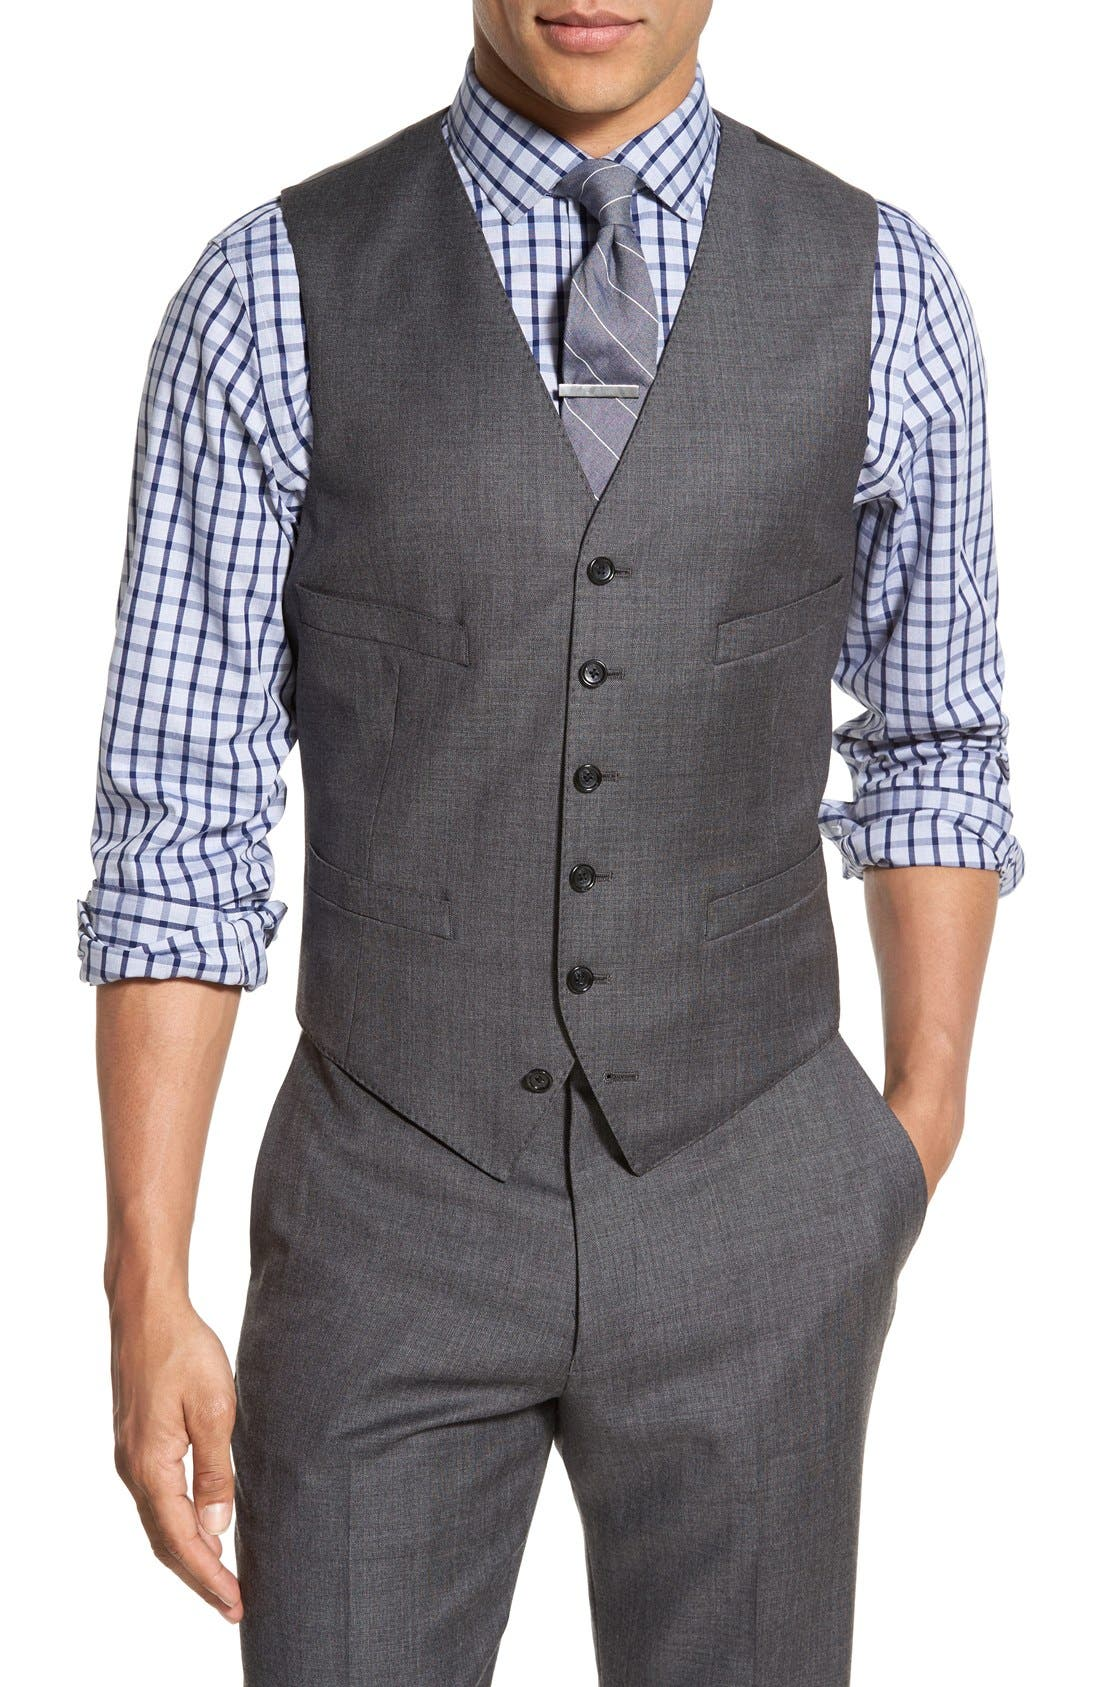 J.Crew Ludlow Trim Fit Solid Wool Vest